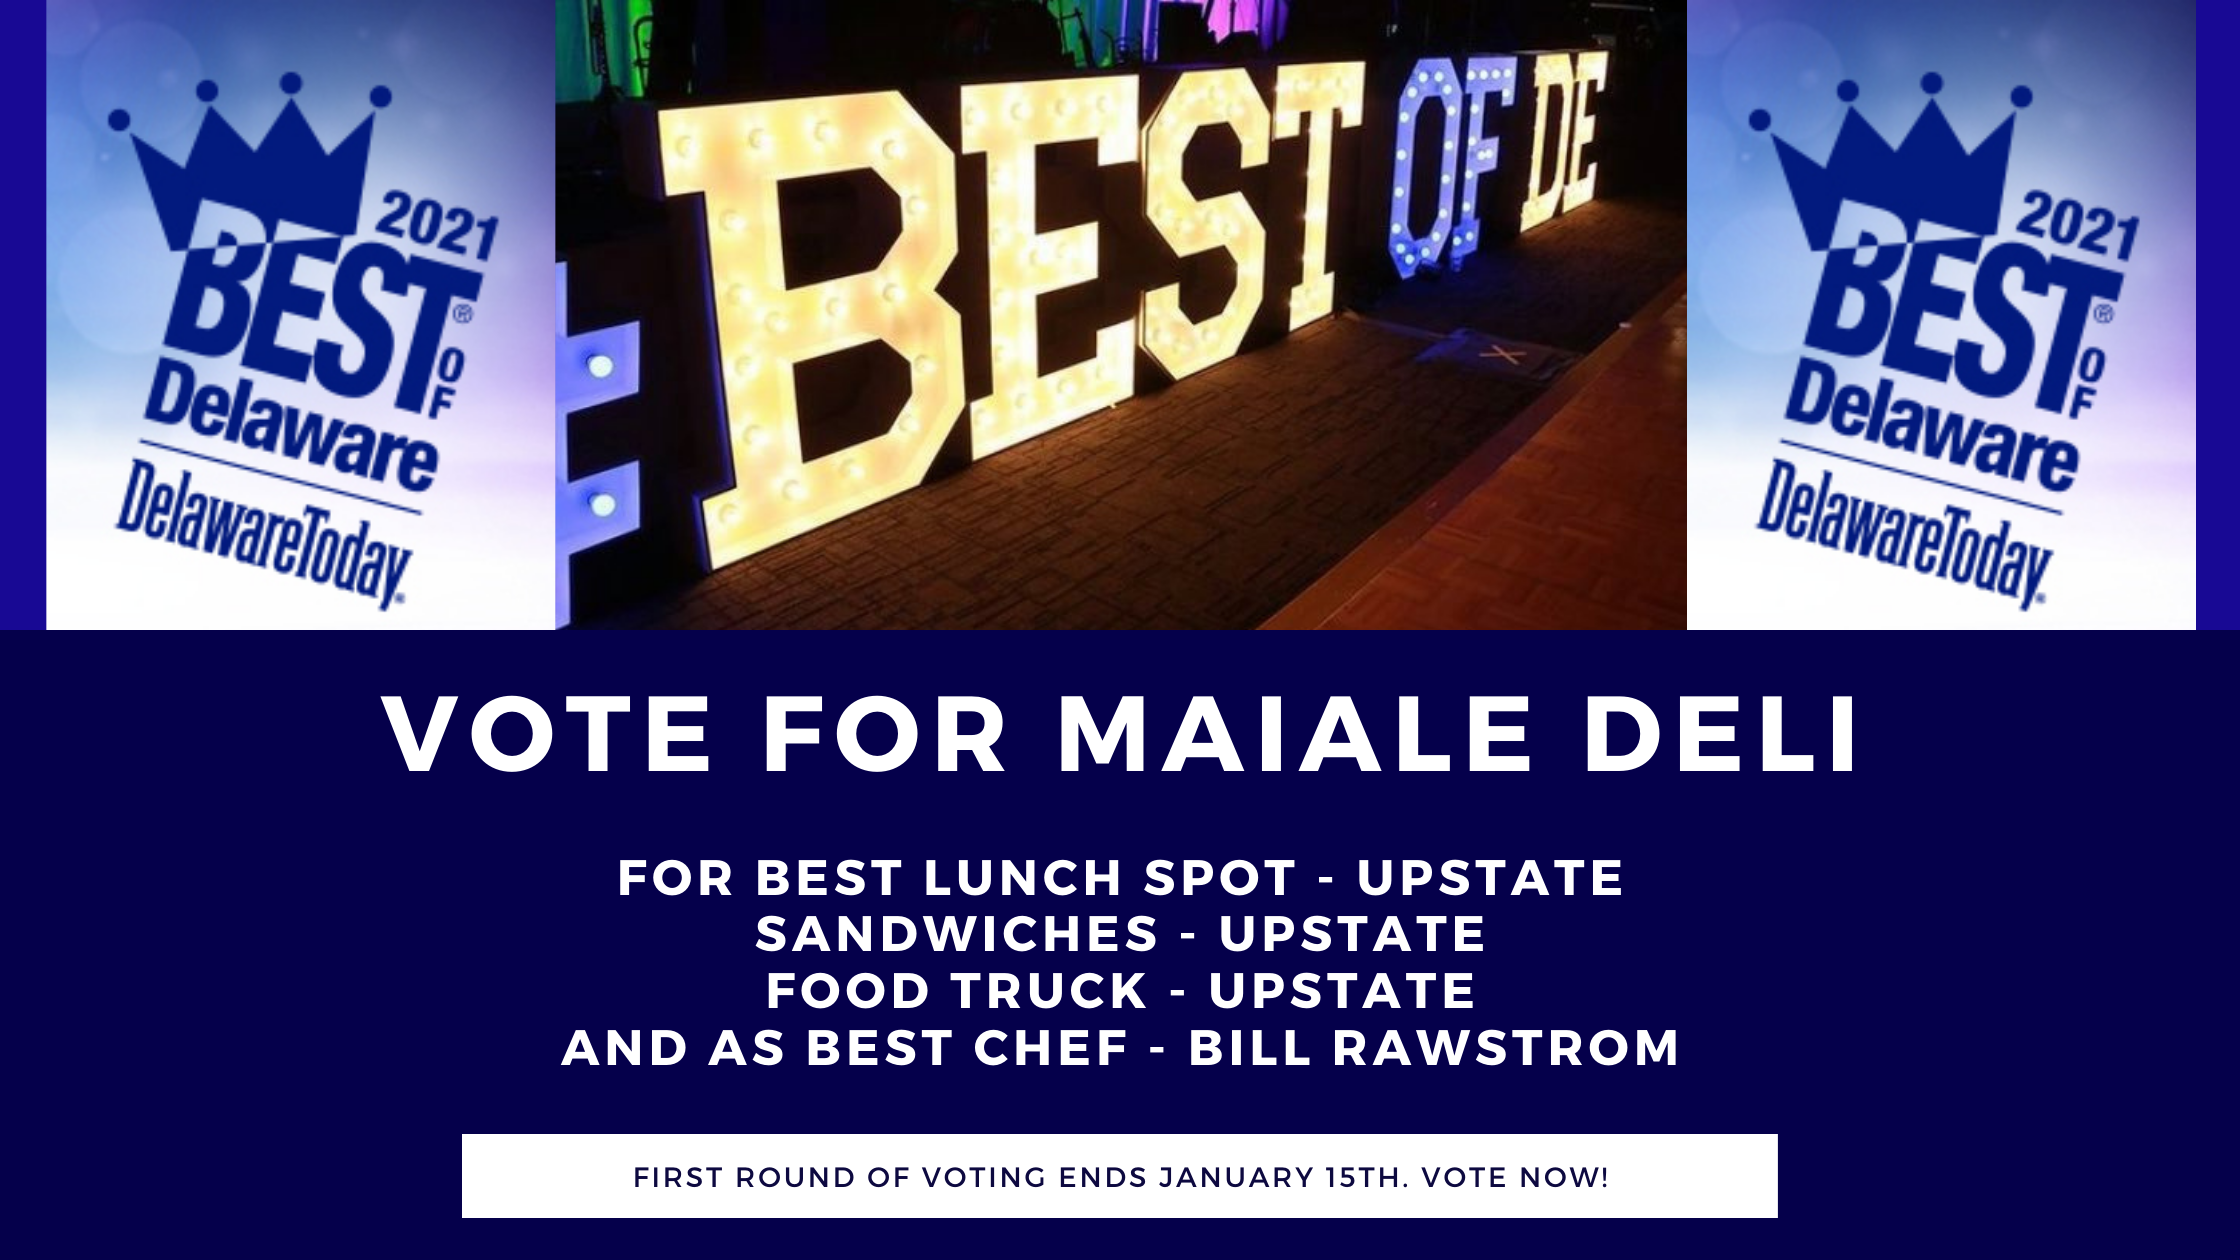 Vote for Maiale Deli in the Best of Delaware 2021